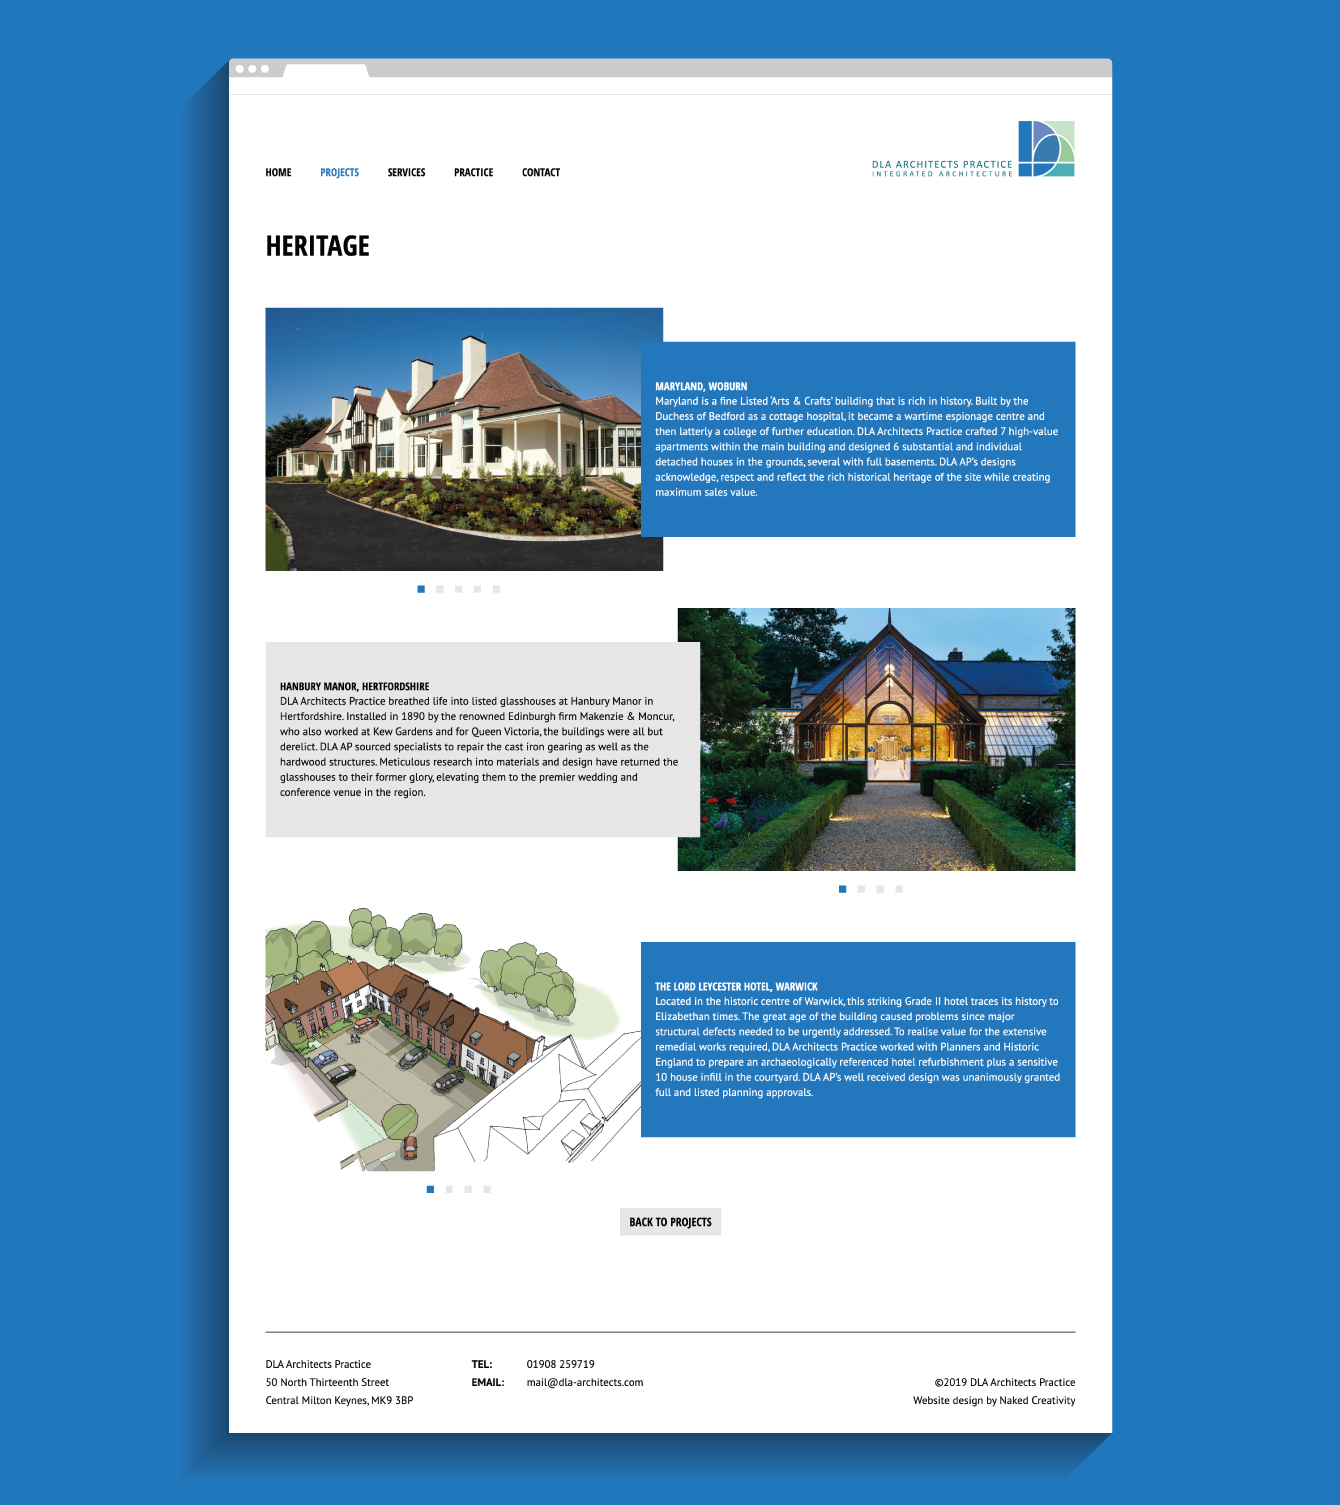 DLA Architects Practice Heritage website page - desktop